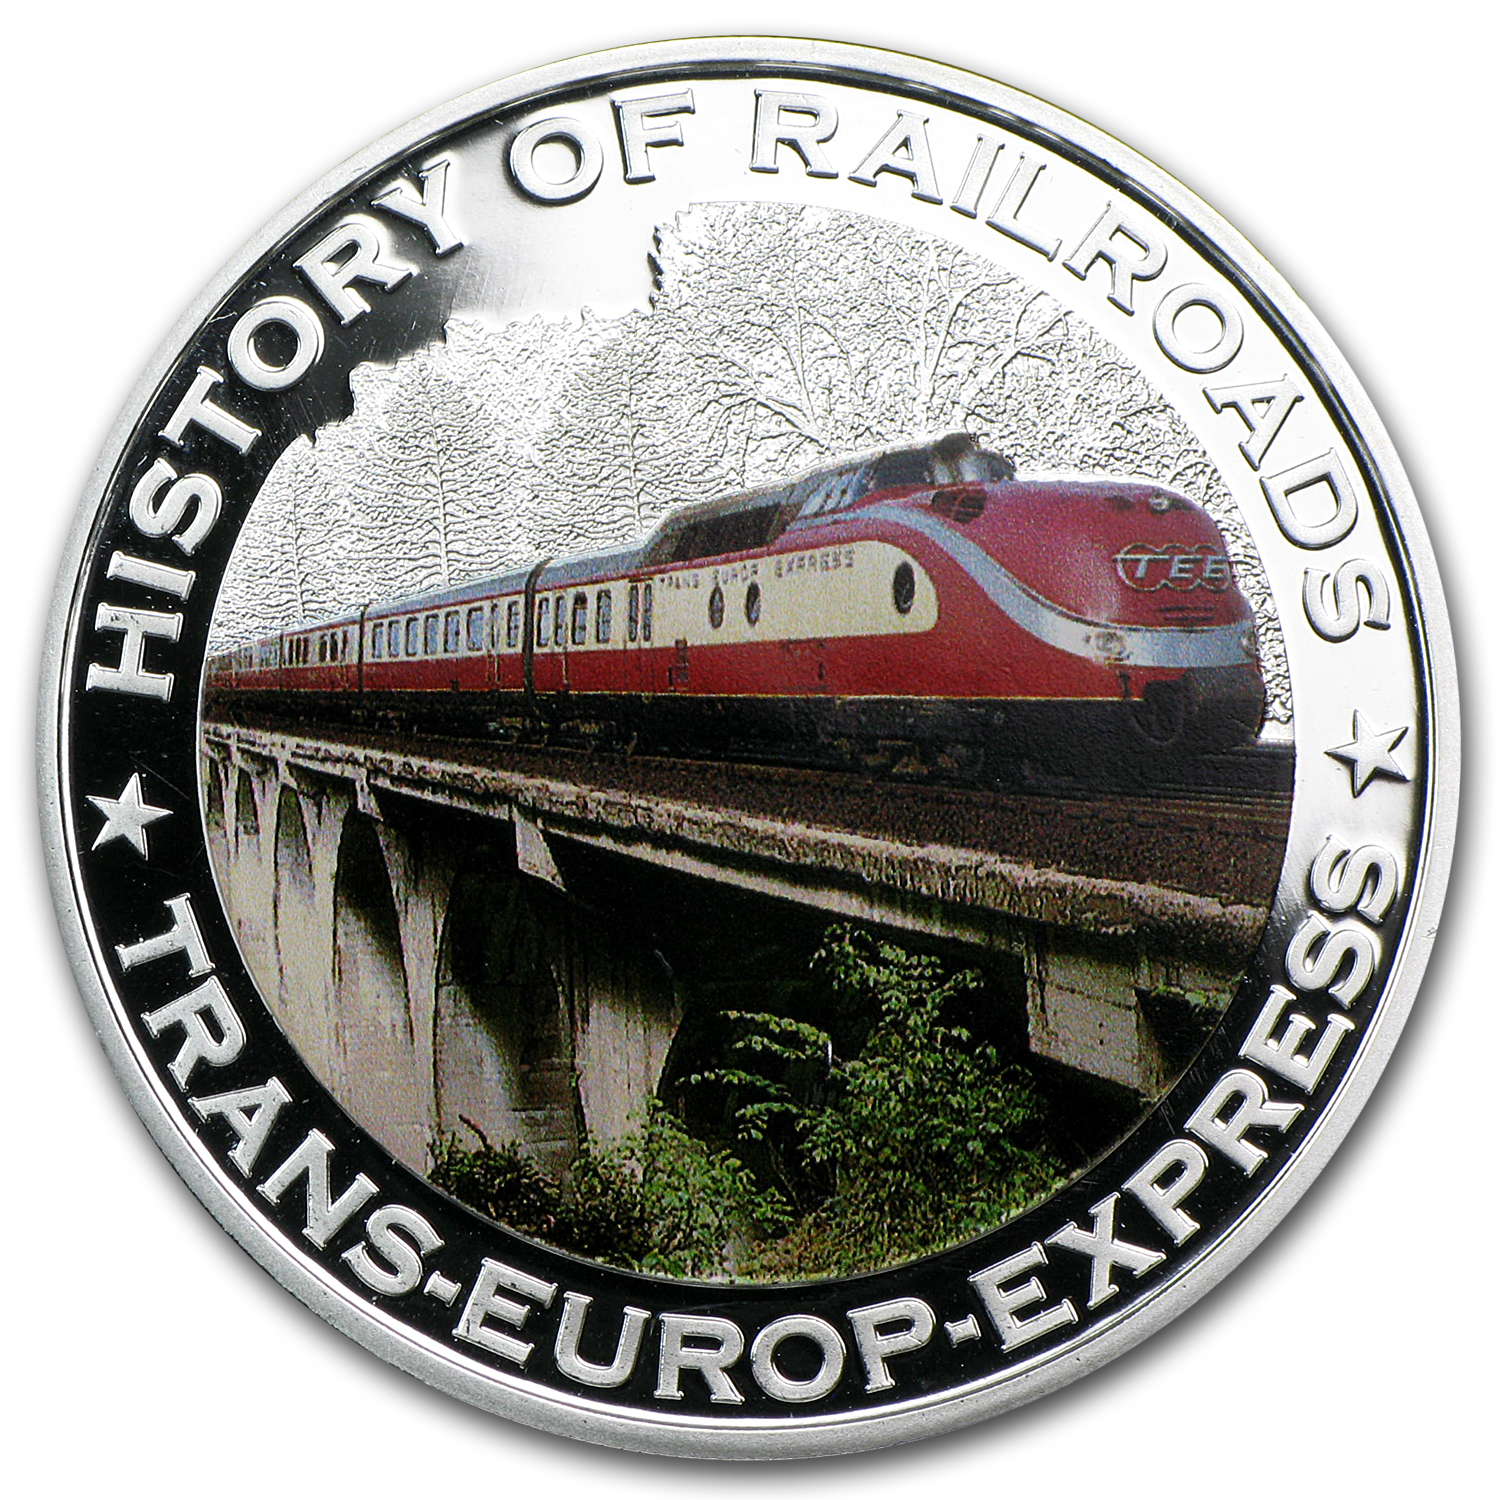 Liberia 2011 5 Dollars Silver Proof - Trans-Europe Express